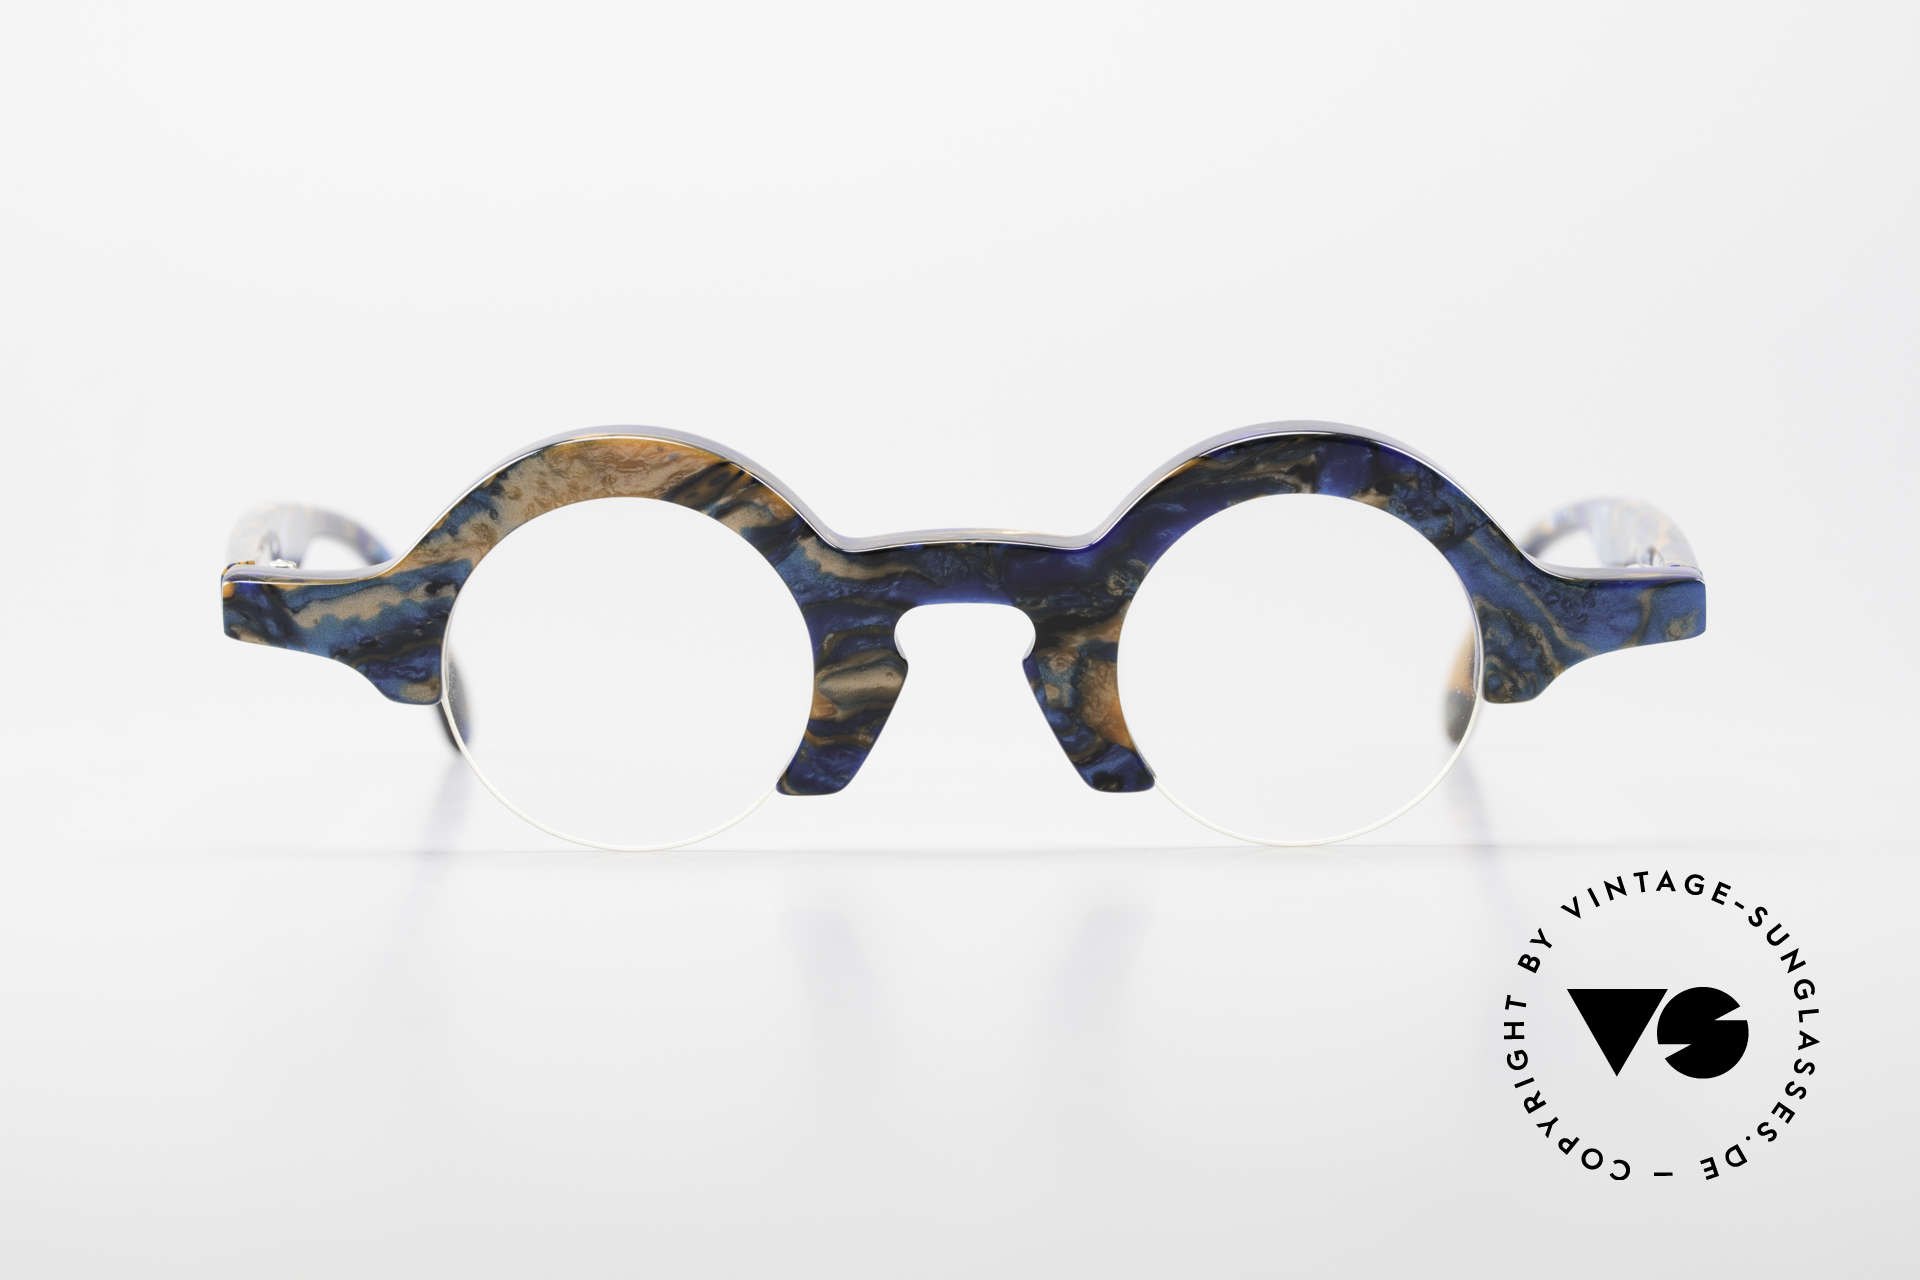 Proksch's A2 Futuristic Round 90's Eyeglasses, Proksch rarity for character heads / individualists, Made for Men and Women